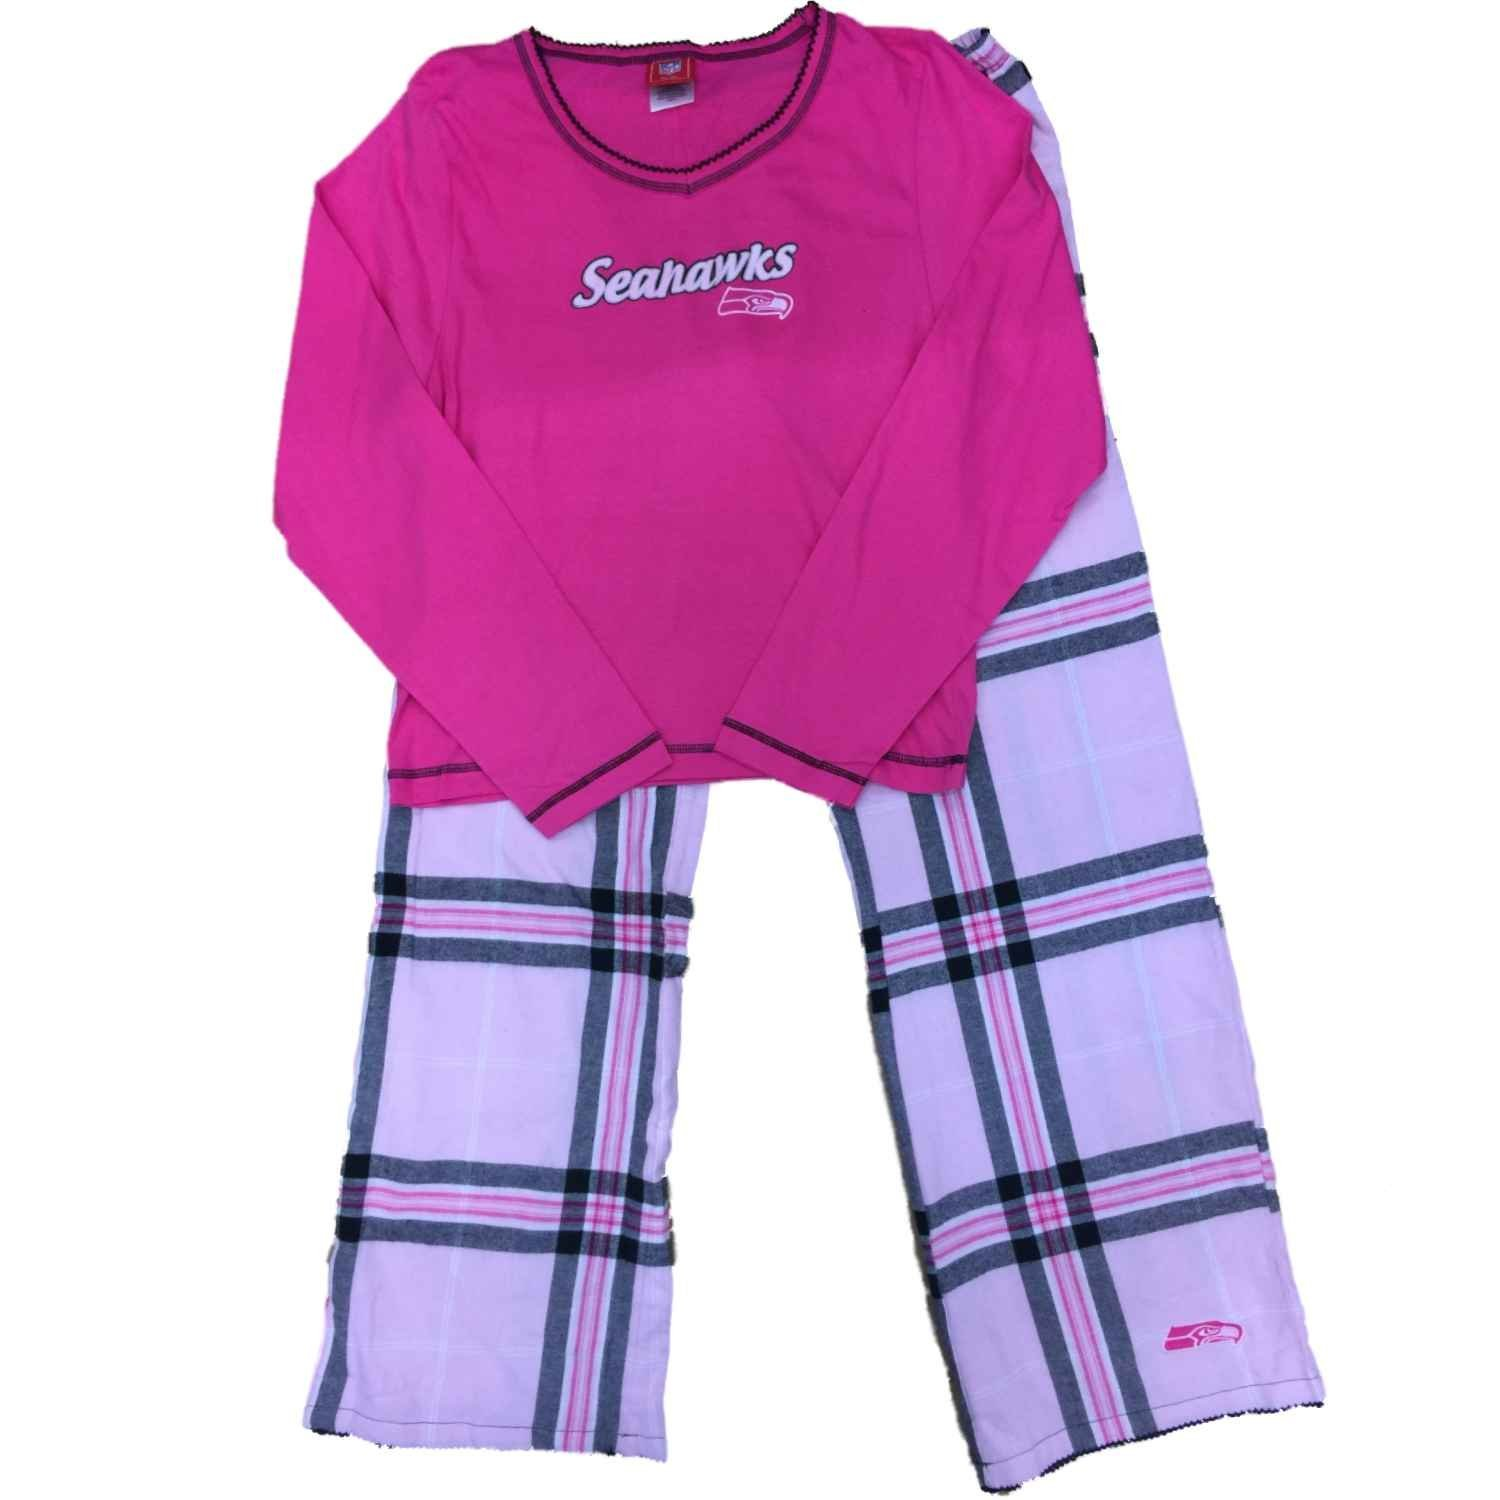 50b4e66a1f Get Quotations · Seahawks Womens Seattle Plaid Pajamas Flannel Pajamas  Sleep Set